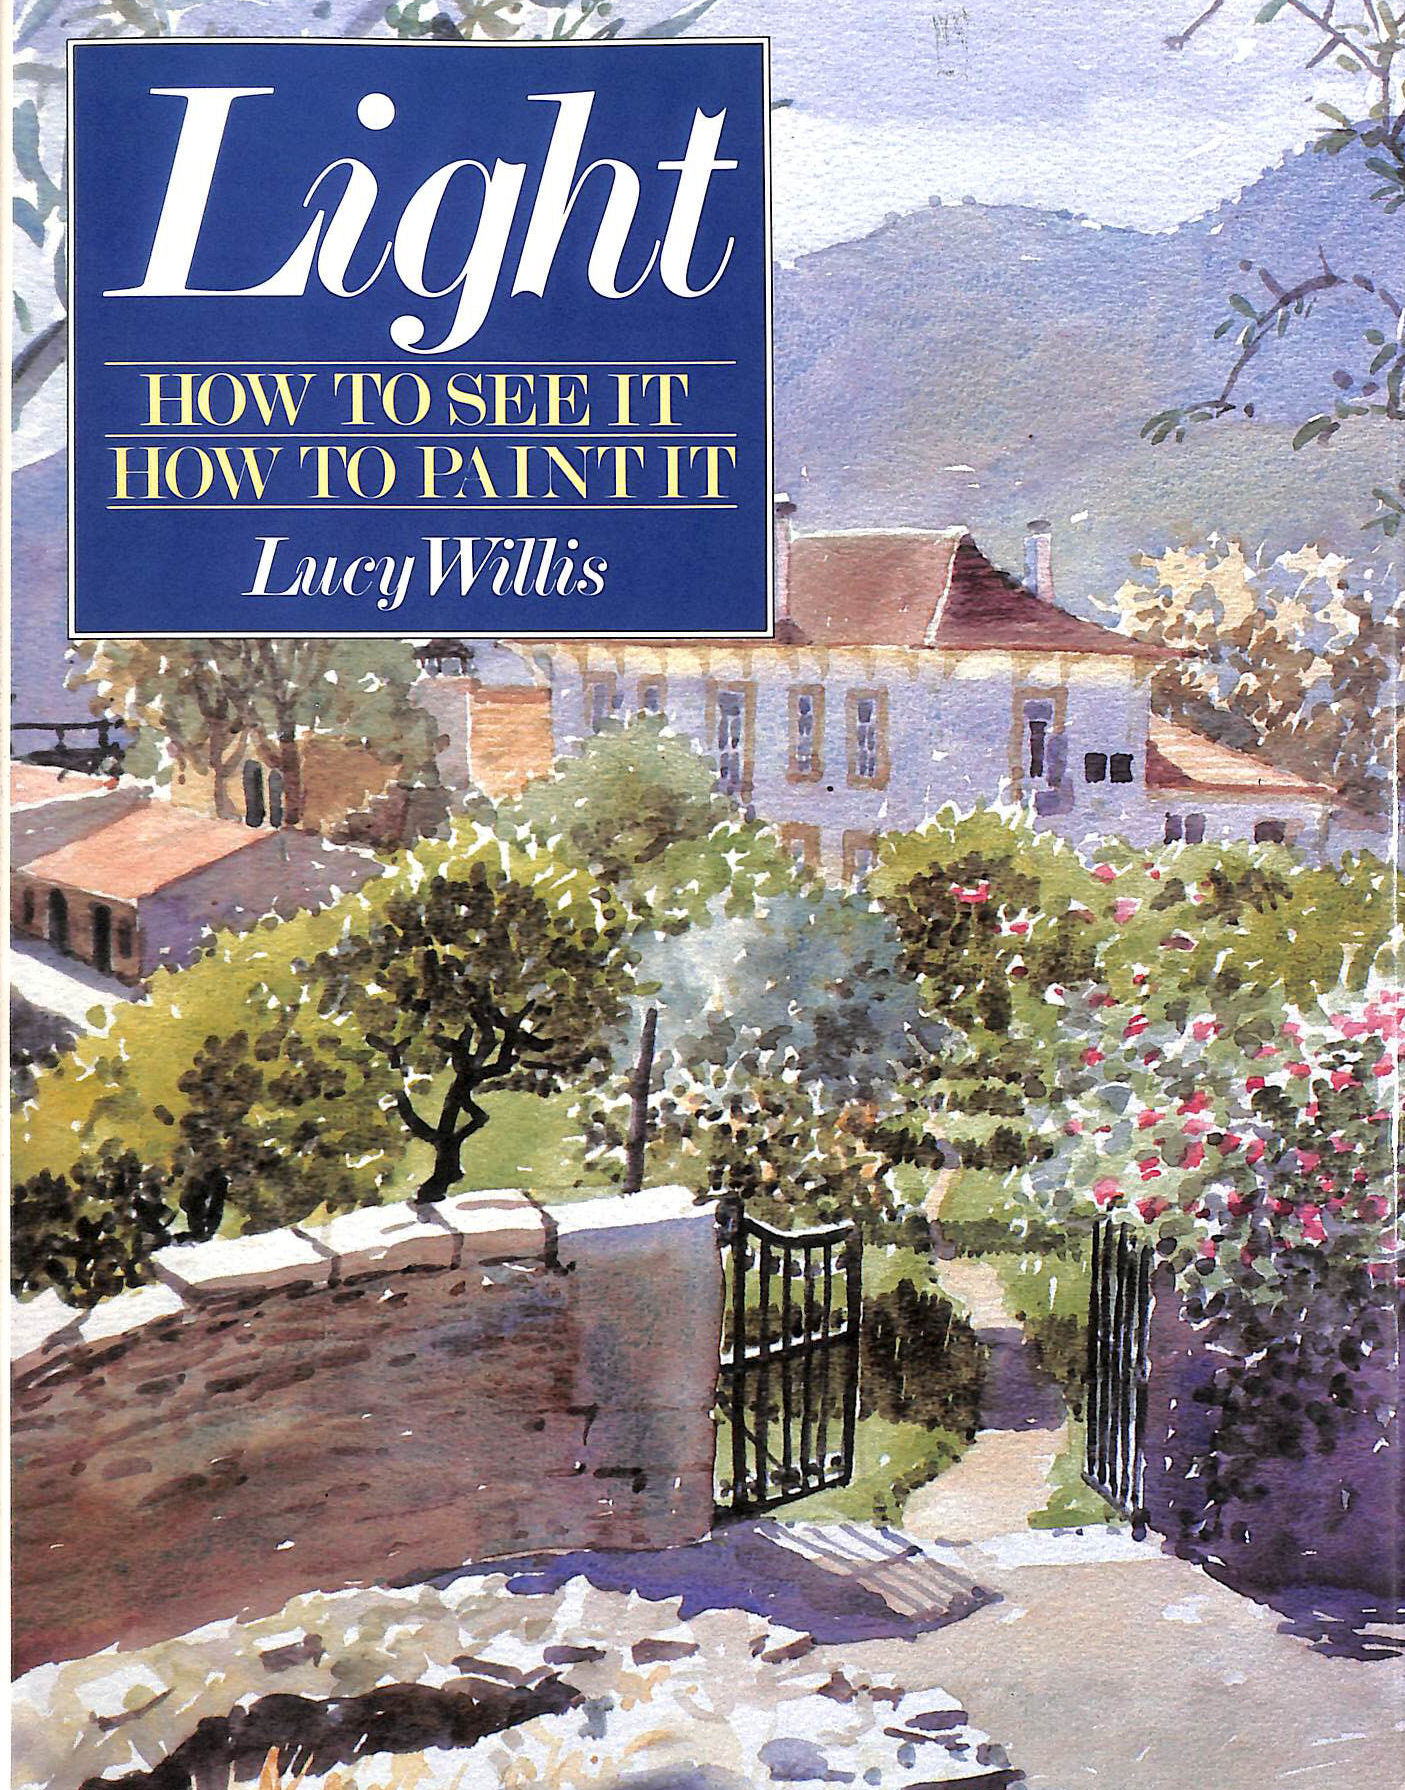 Image for Light: How to See it, How to Paint it